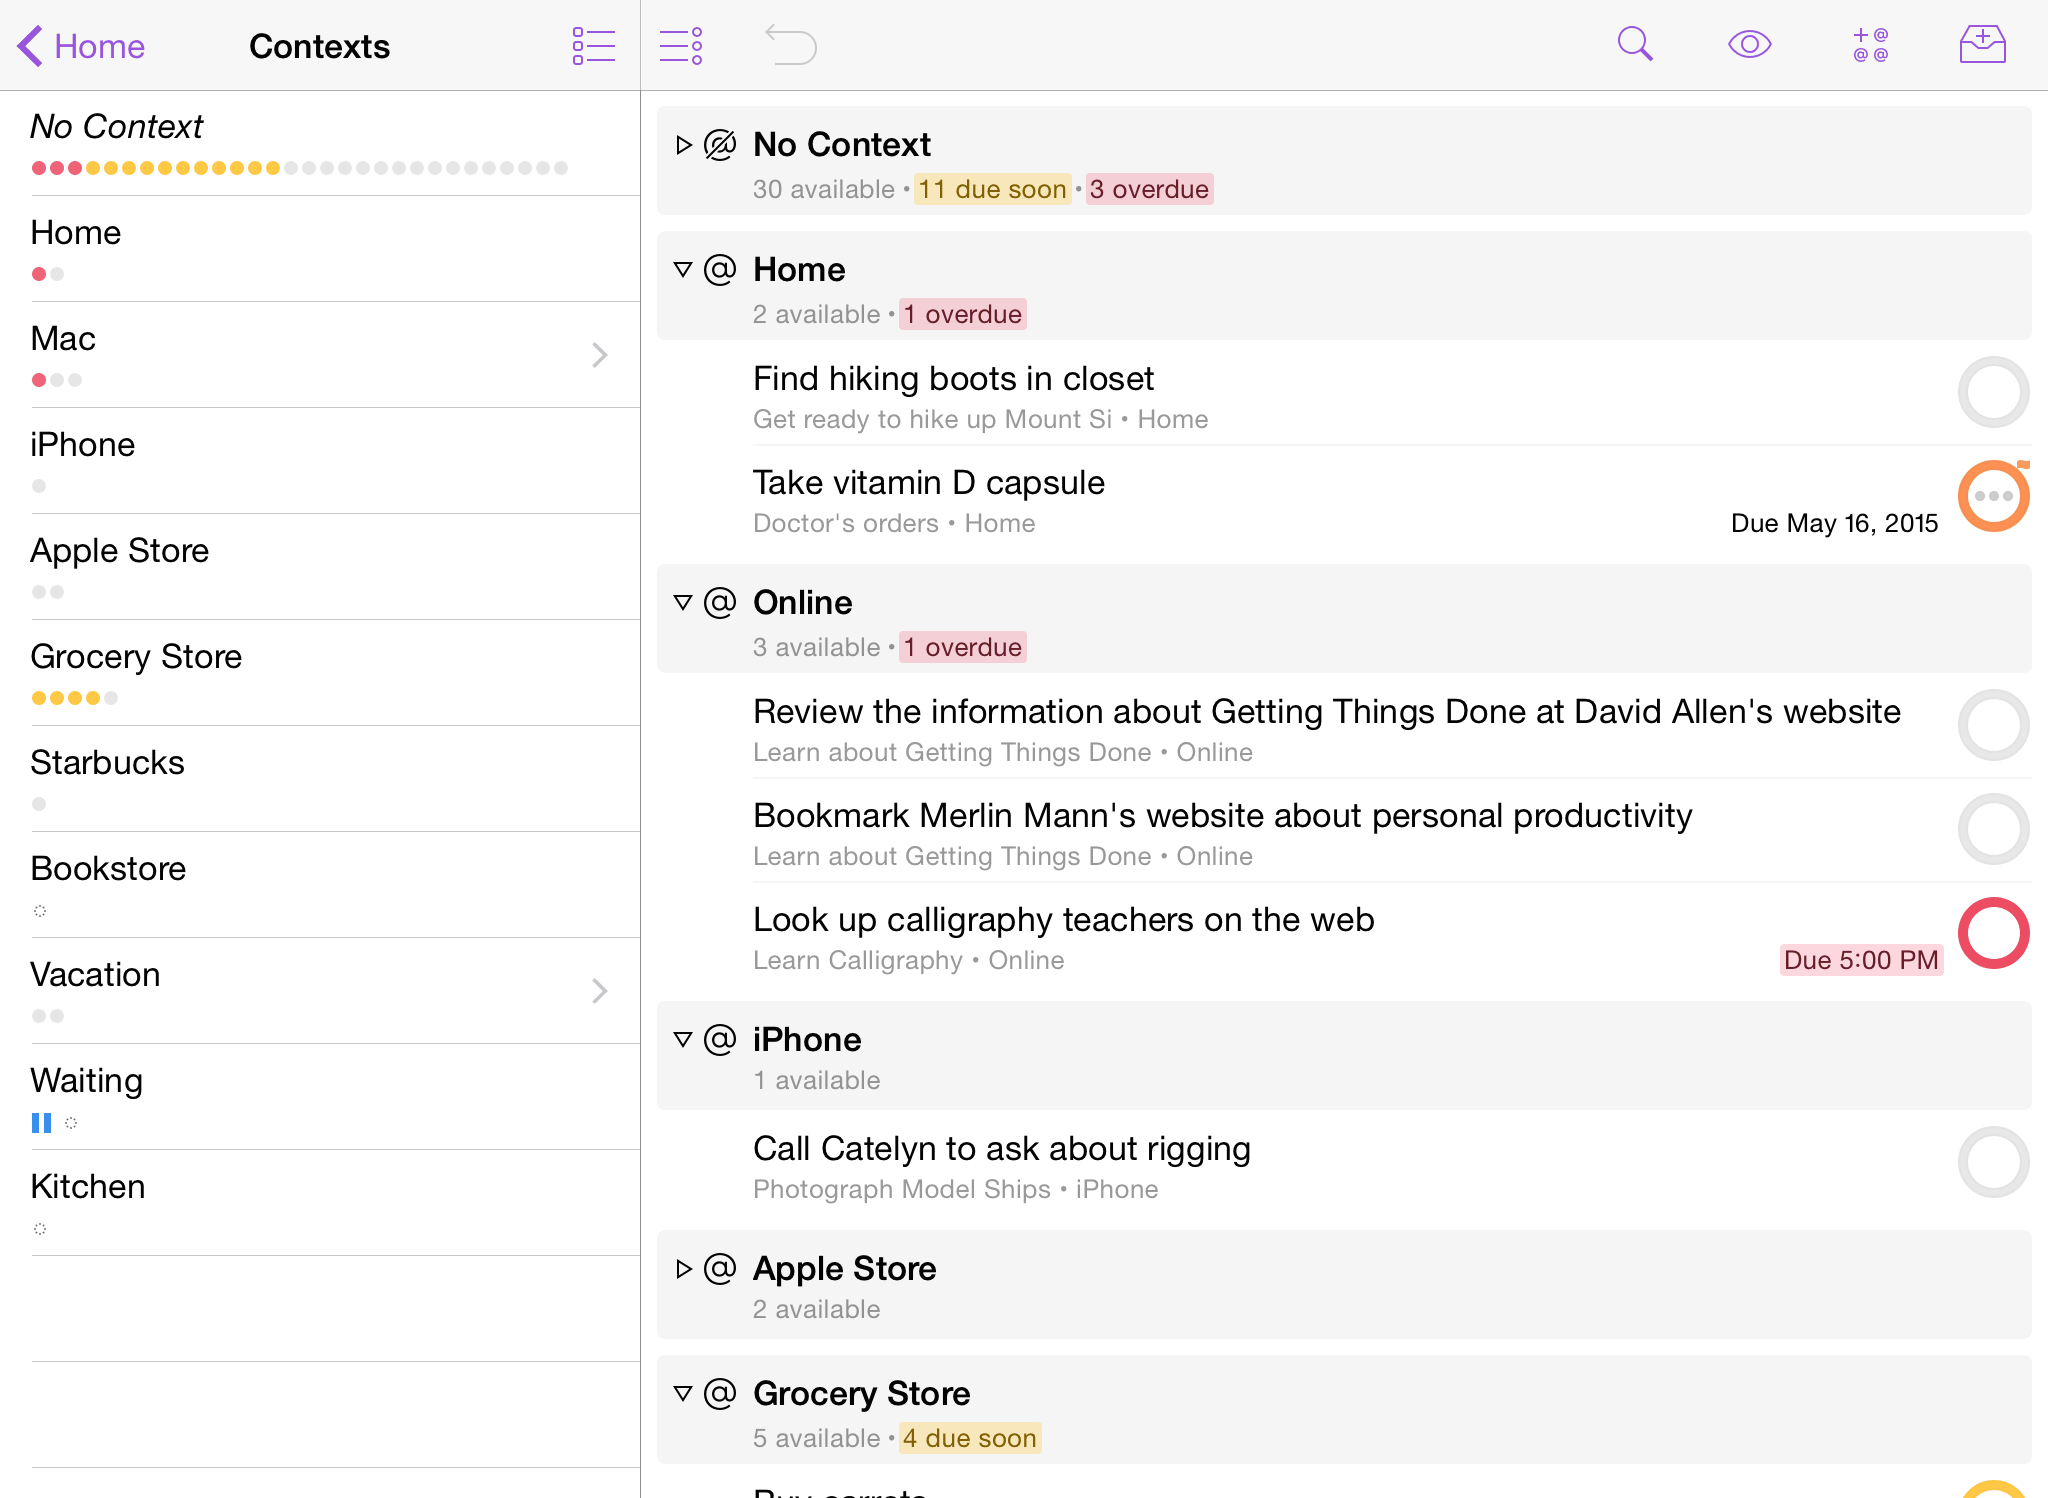 omnifocus 2 for ios user manual the omni group